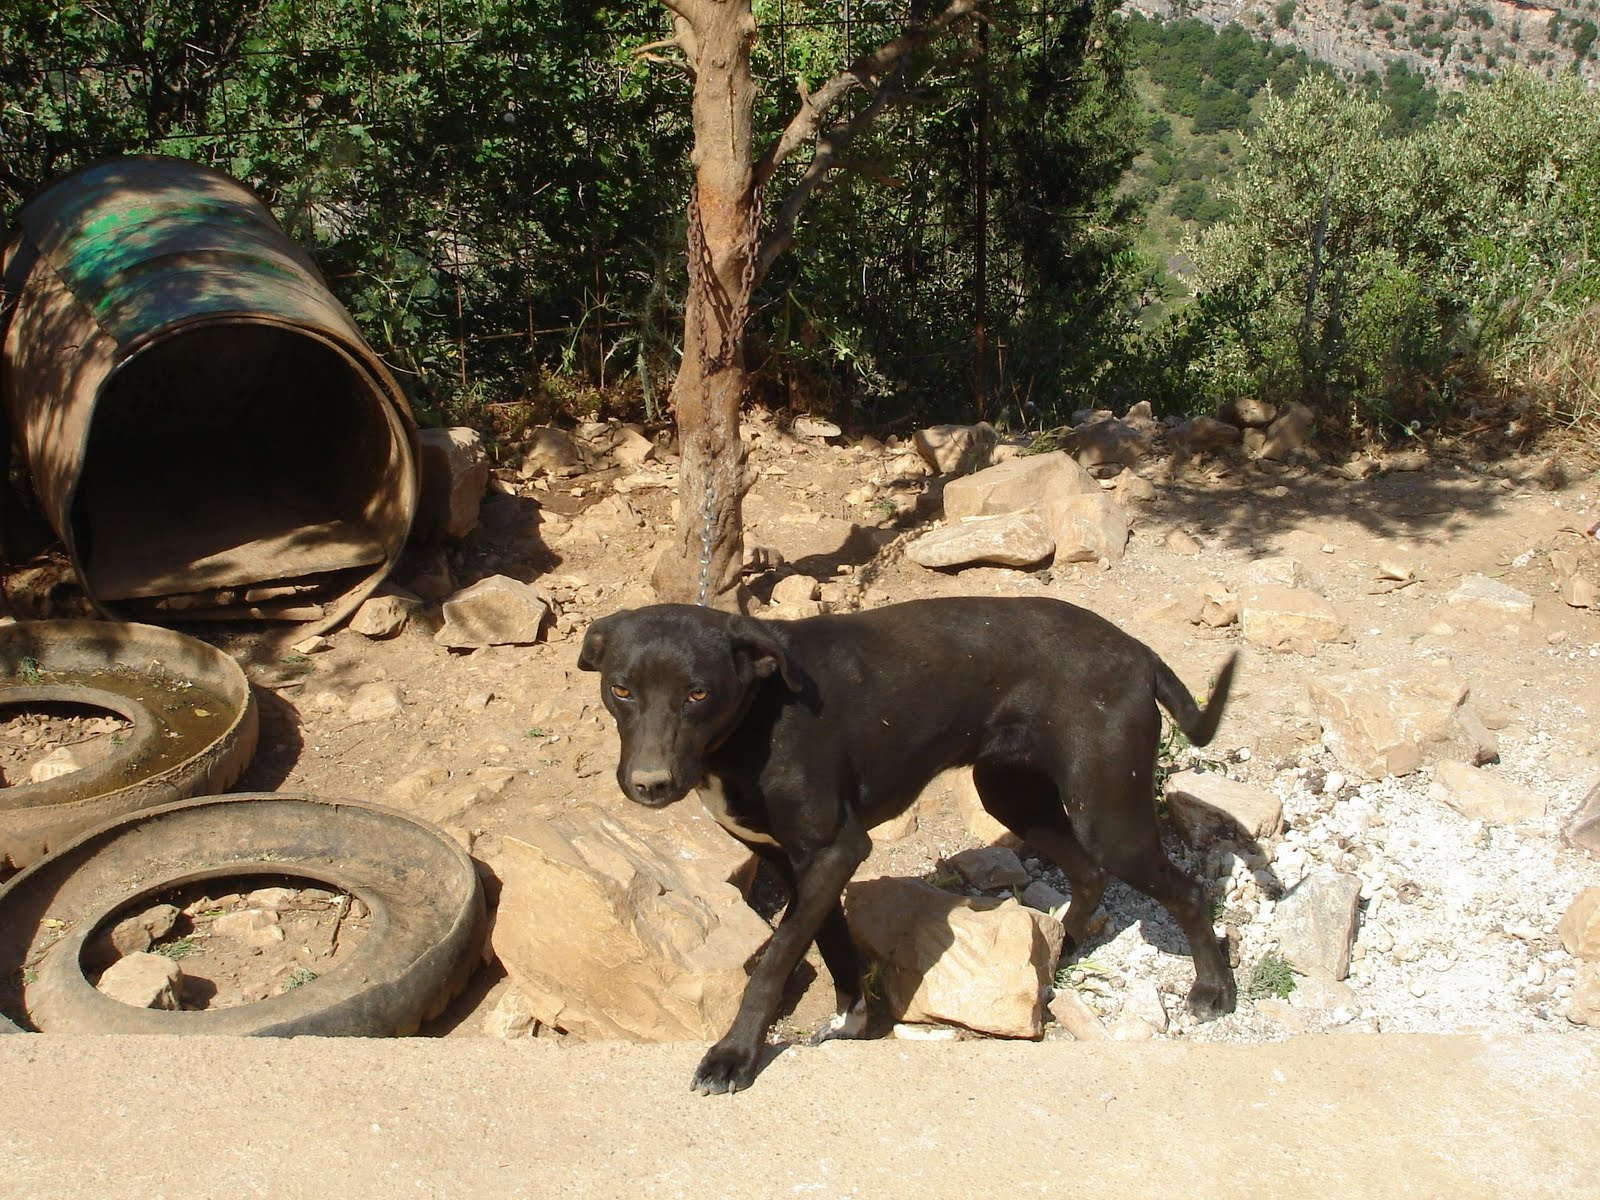 A 'barrel dog' outside the village of Droustoula, Ikaria, in its 'natural' environment: a tin barrel, a chain and filthy water inside an old tire